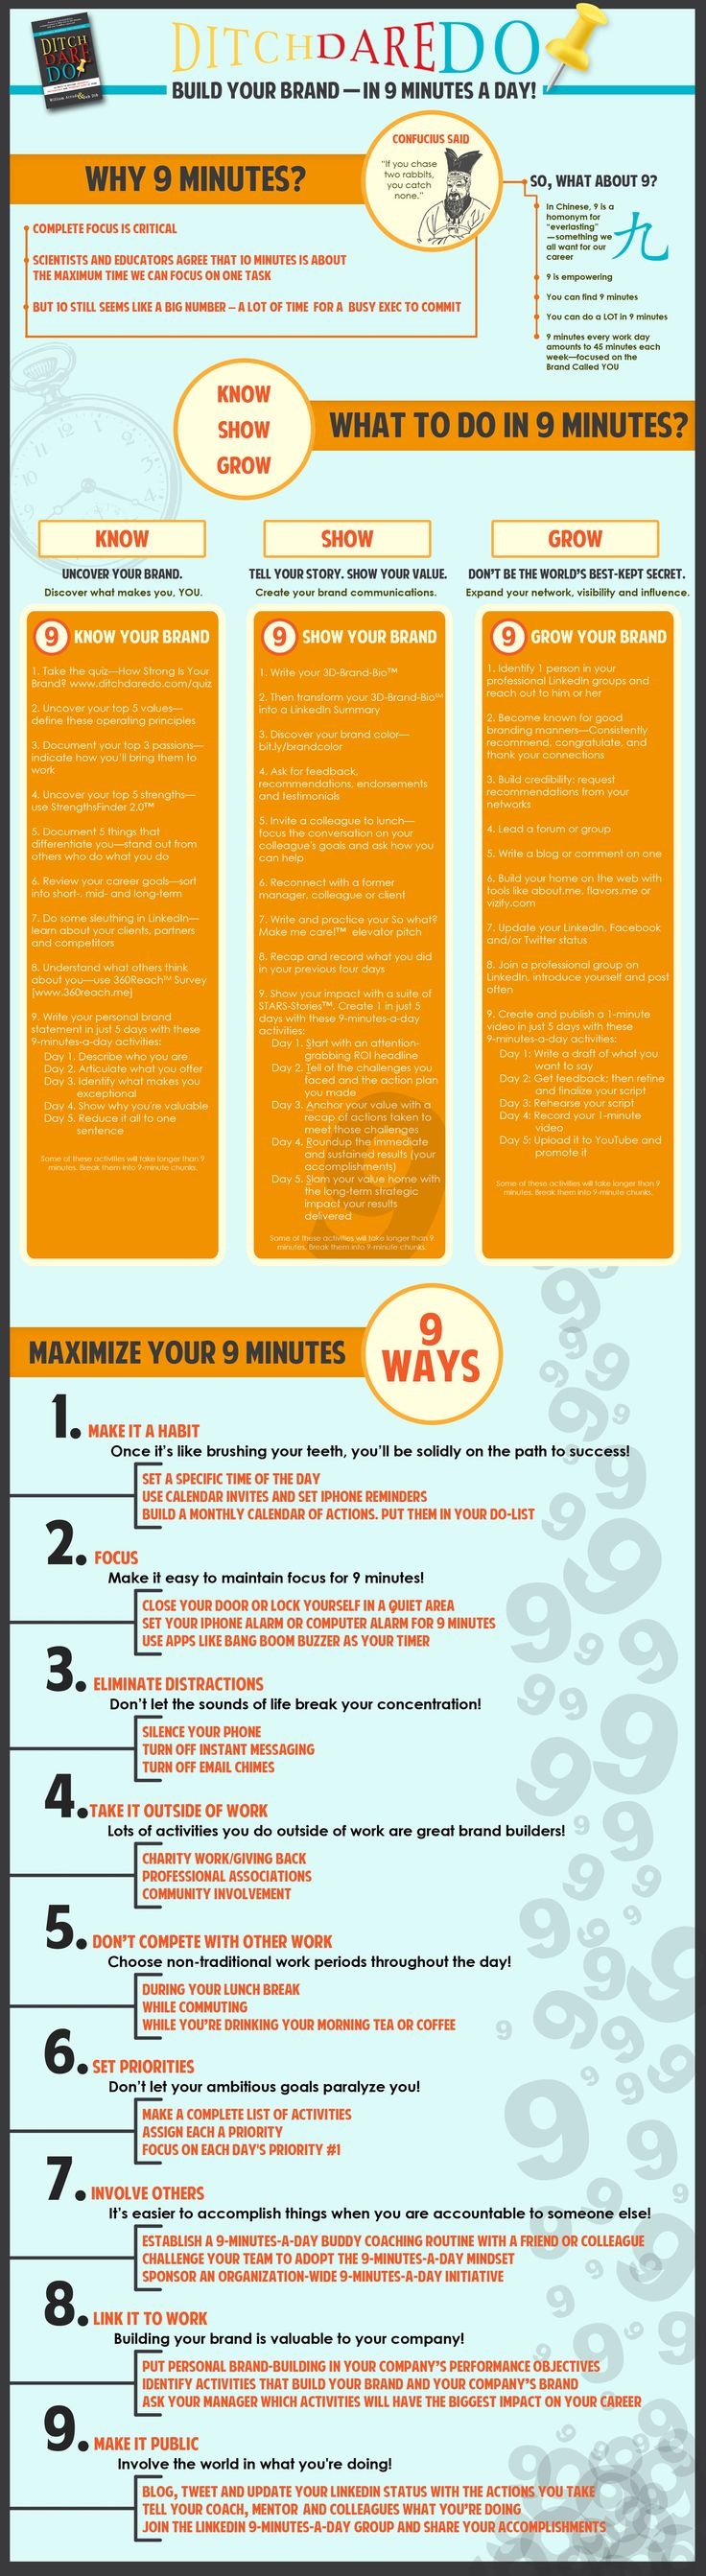 How To Build Your Personal Brand in 9 Minutes Each Day [INFOGRAPHIC] http://personalbrandinguk.com/9-minutes/  #personalbrand #branding #socialmedia